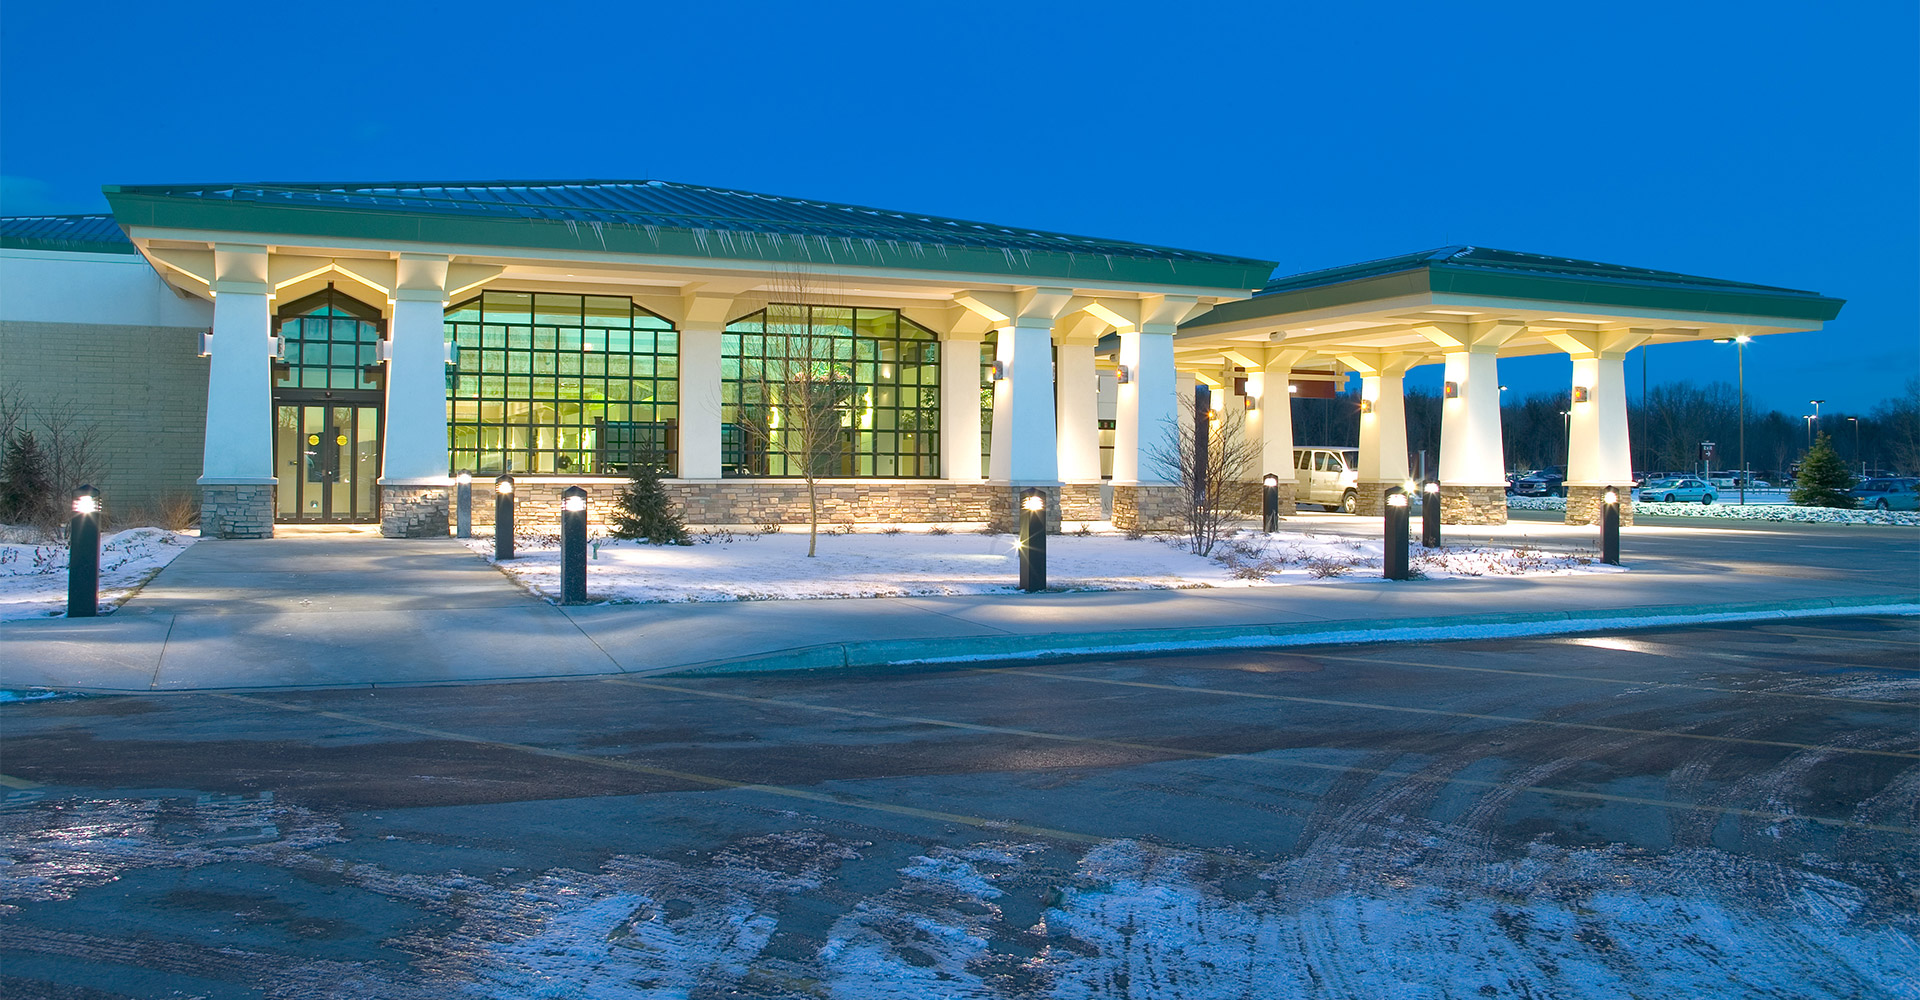 Exterior of Cherry Capital Airport in the snow.